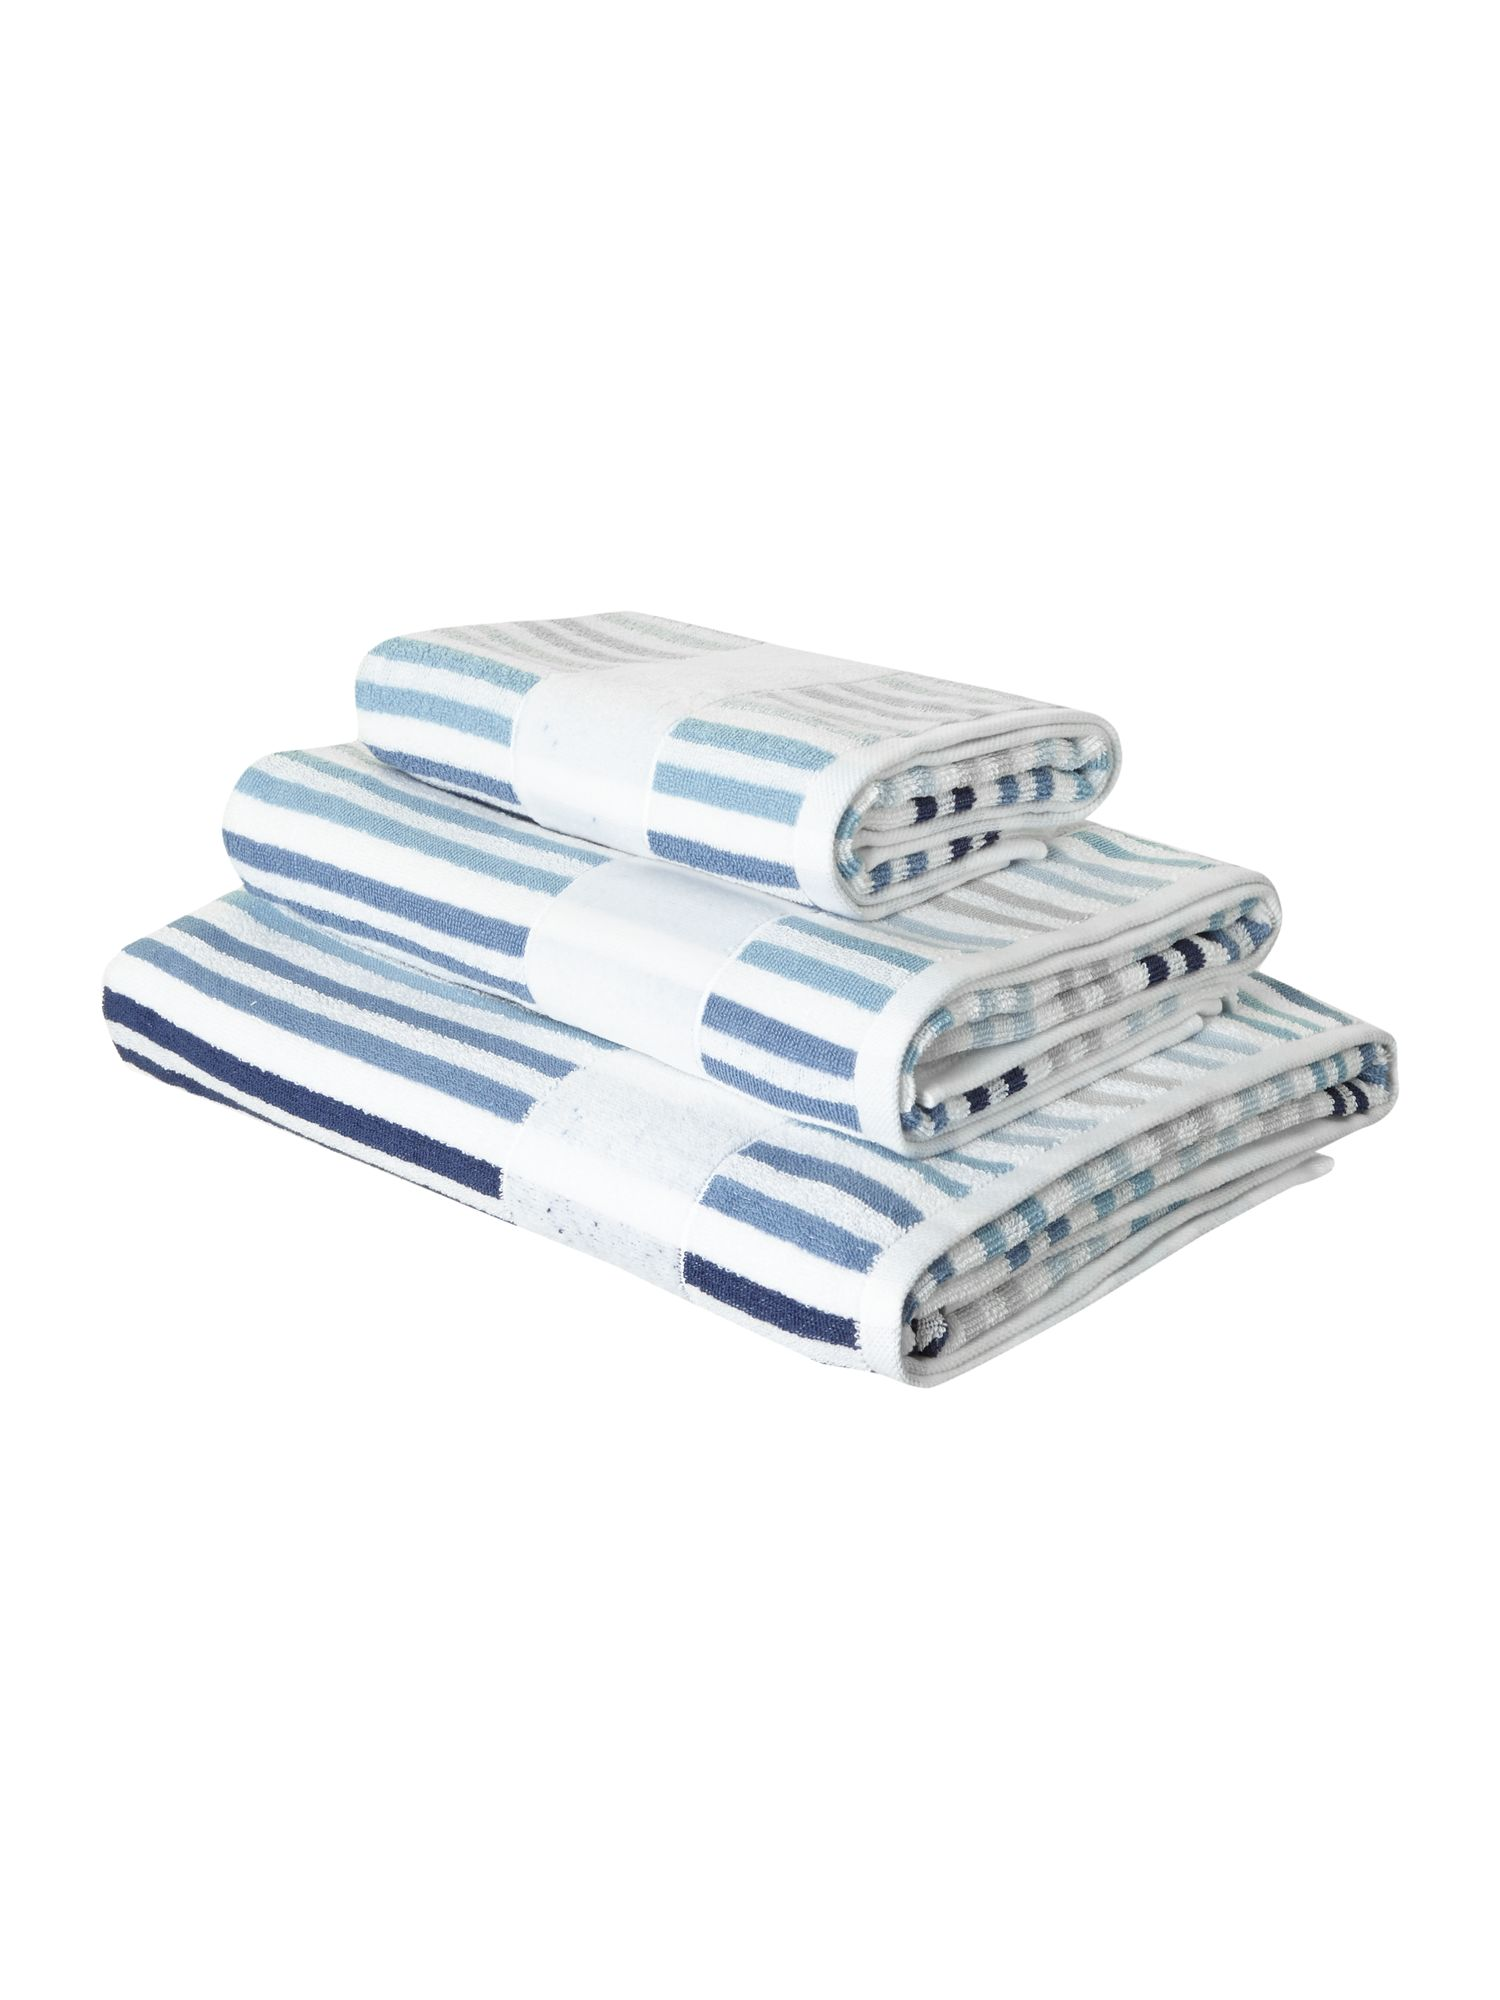 Yarn stripe towels in blue